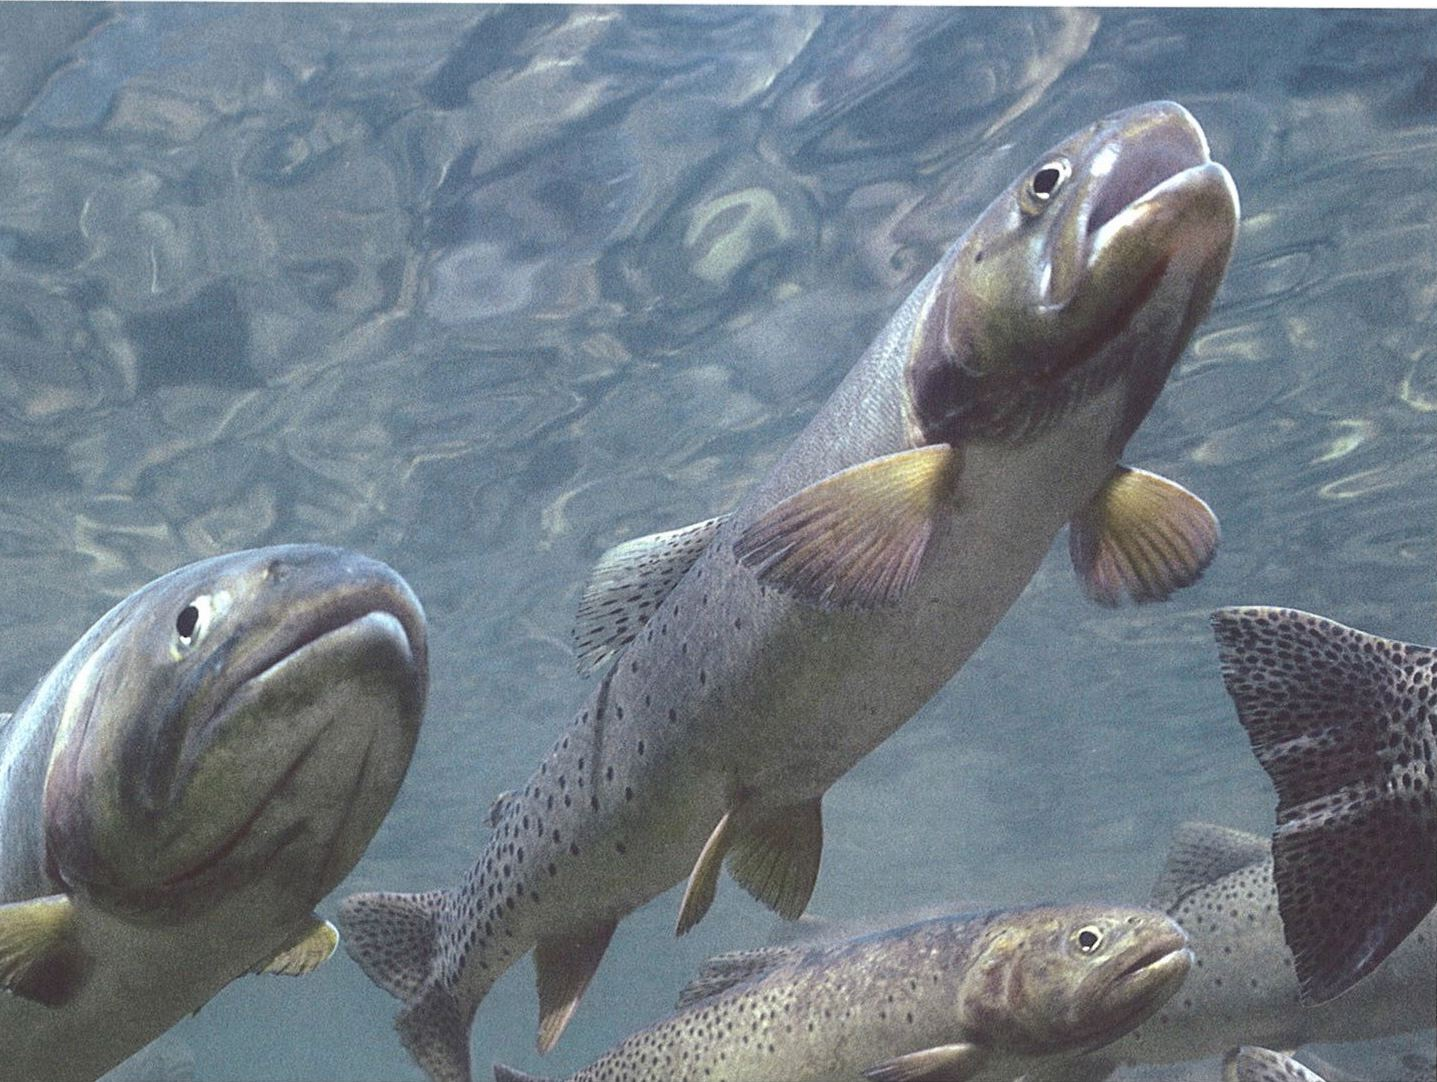 Trout in water - Tom Murphy.jpg